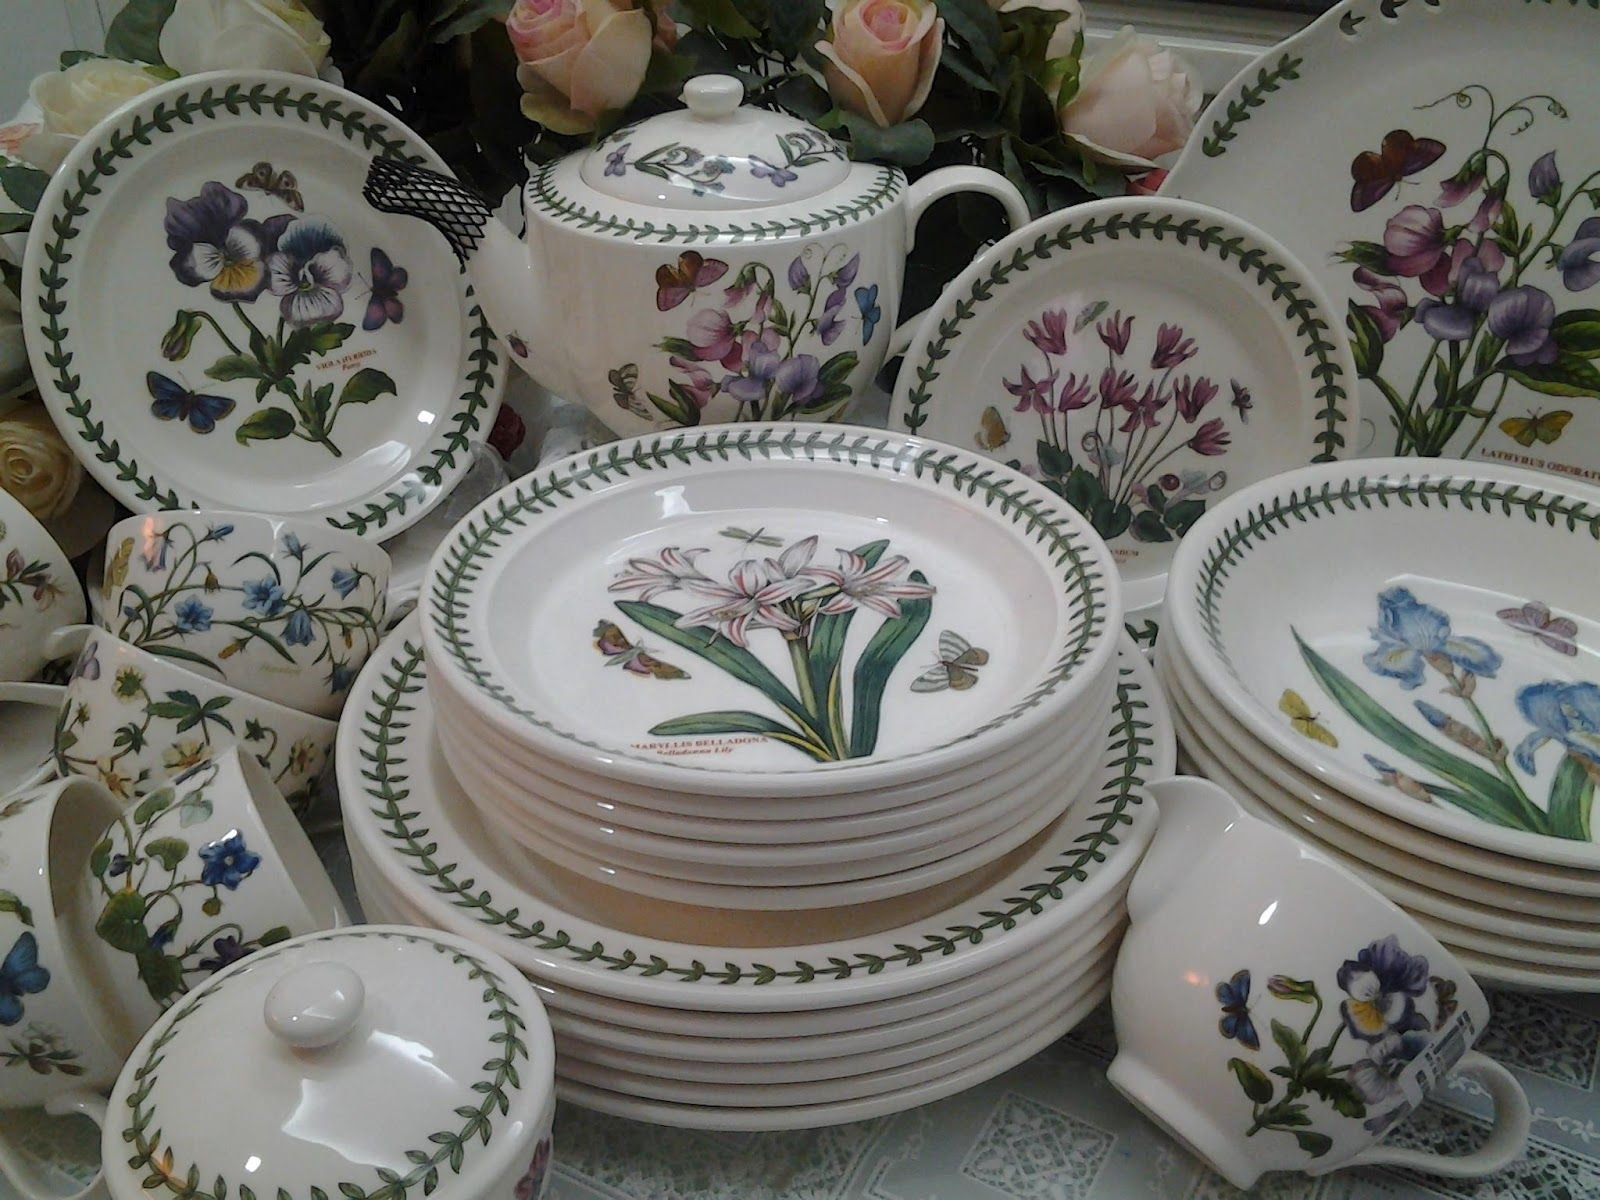 British Dinner Plates 40 Pieces 6 X Dinner Plate 6 X